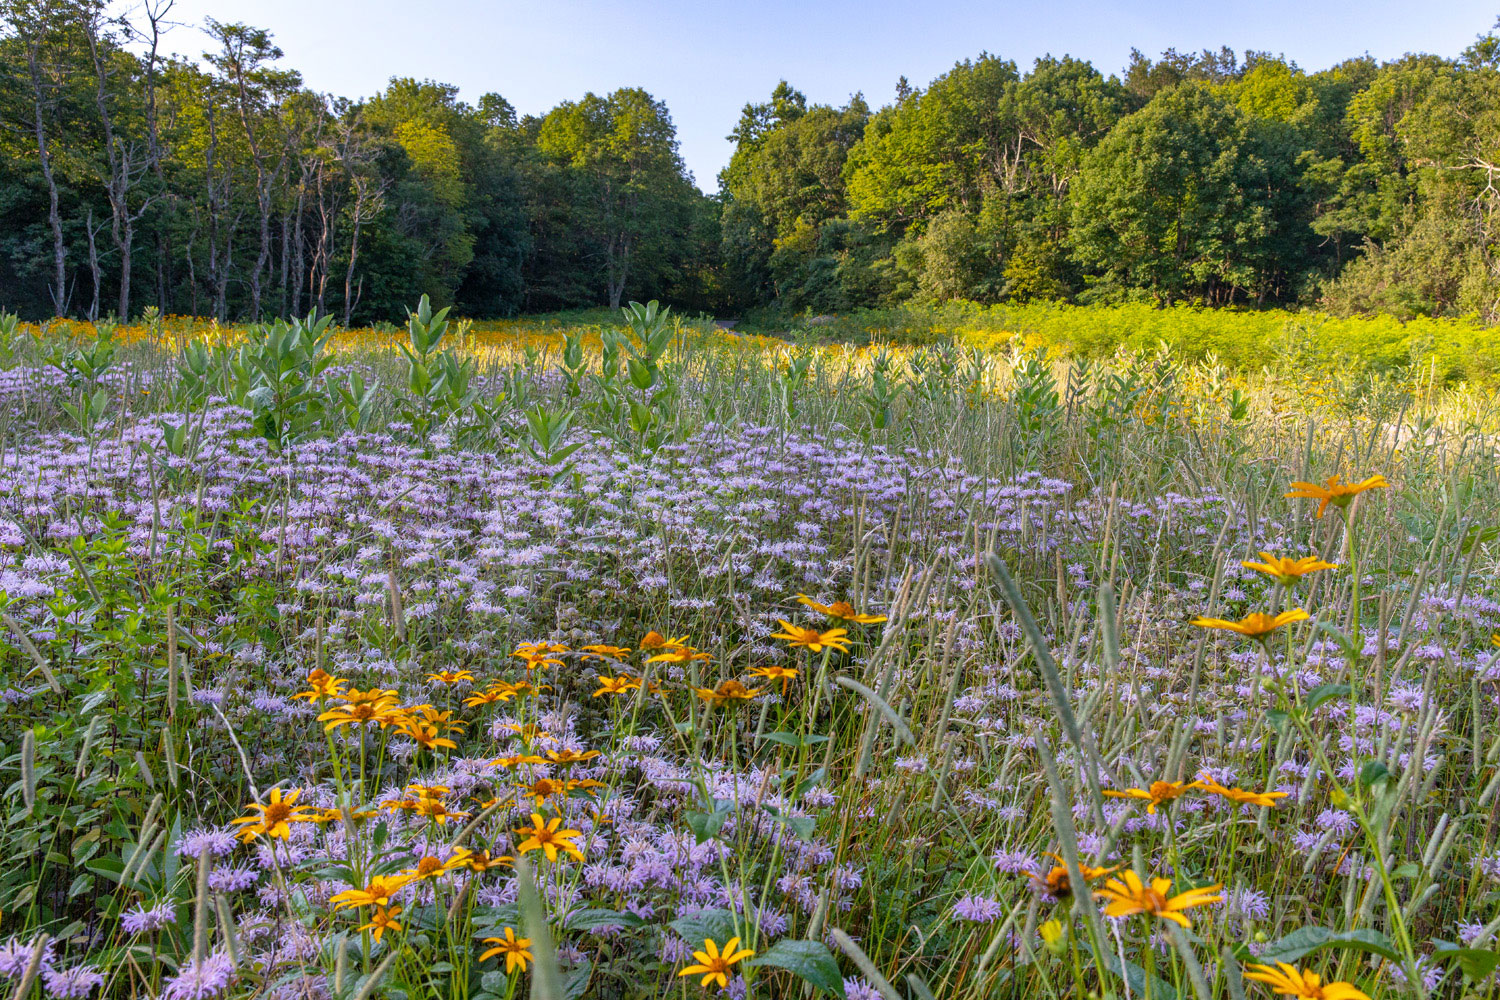 Shenandoah's Wild side:  meadows and roadsides of yellow helianthus, solidago and rudbeckia, purple asters and monarda, white...